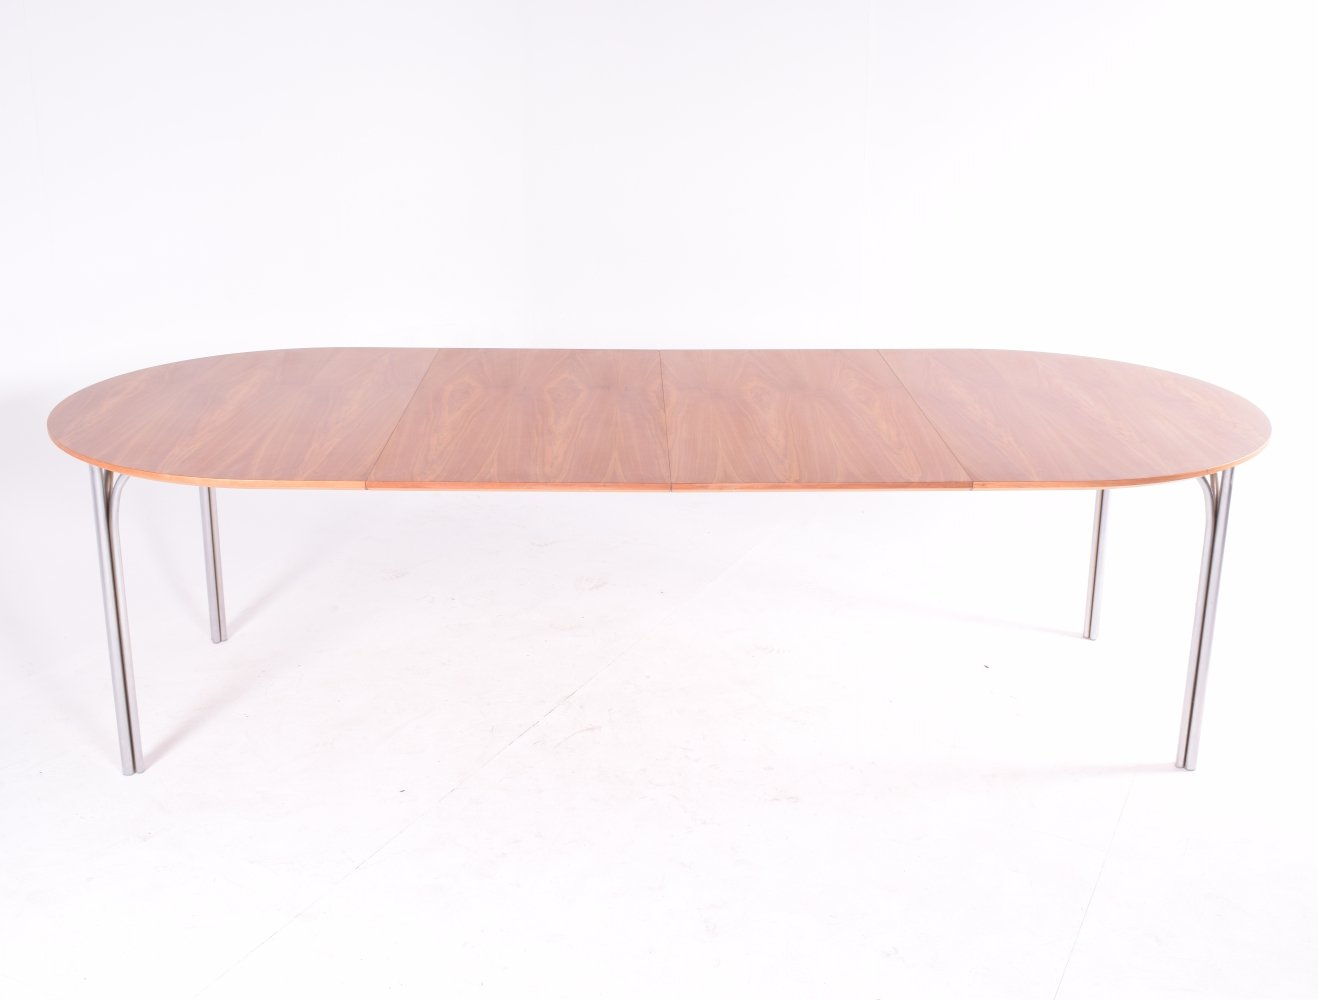 Scandinavian Modern Tobago Teak Dining Table by Nanna Ditzel, 1993